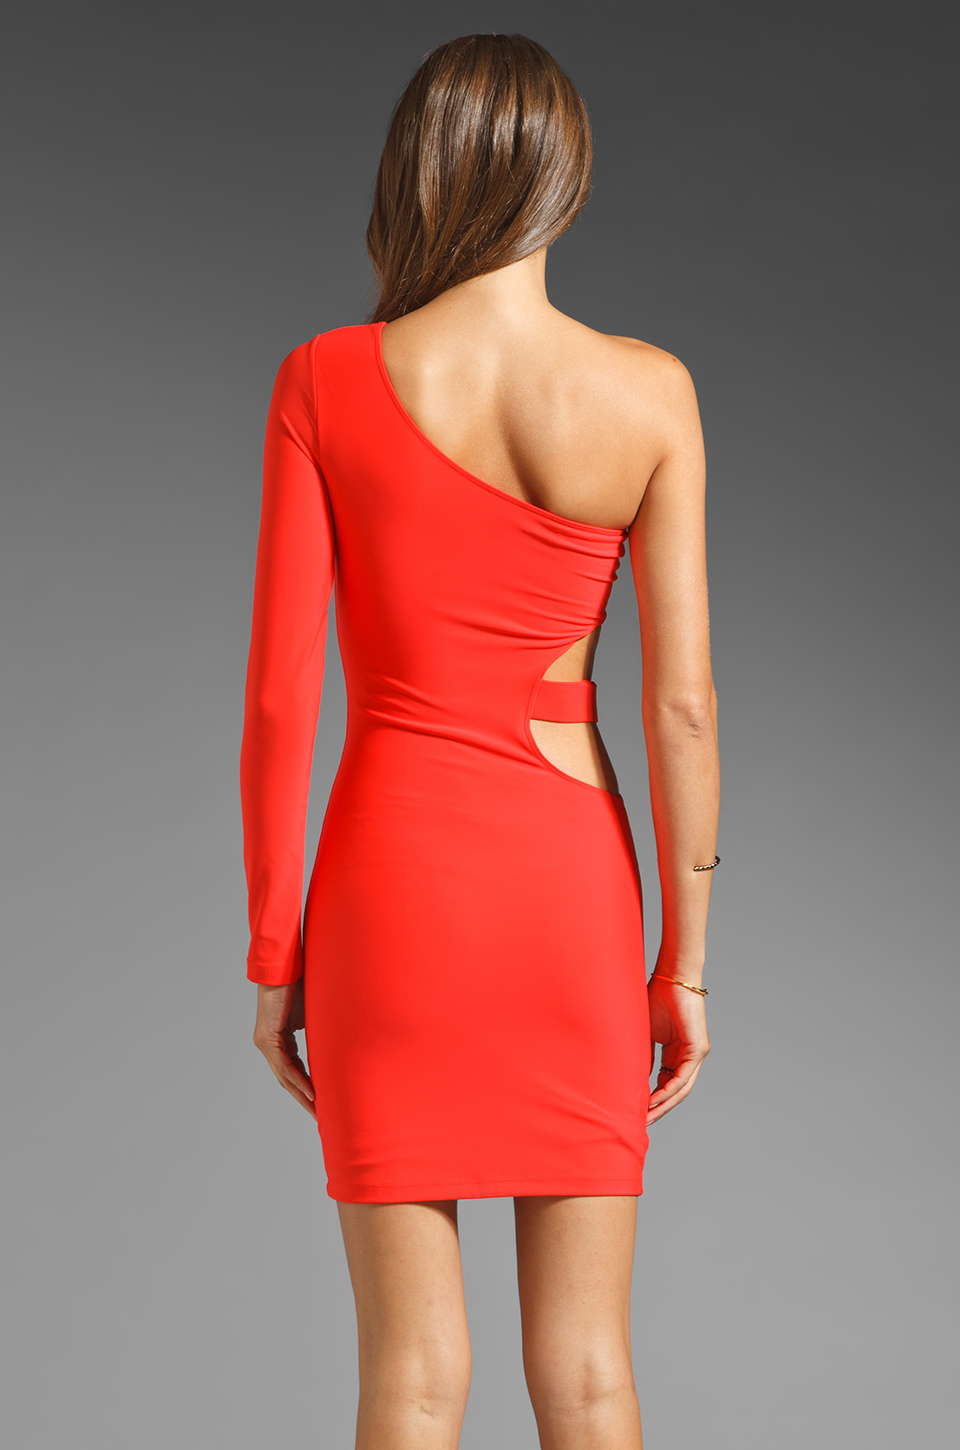 Boulee Allie One Shoulder Cut Out Dress in Hot Coral